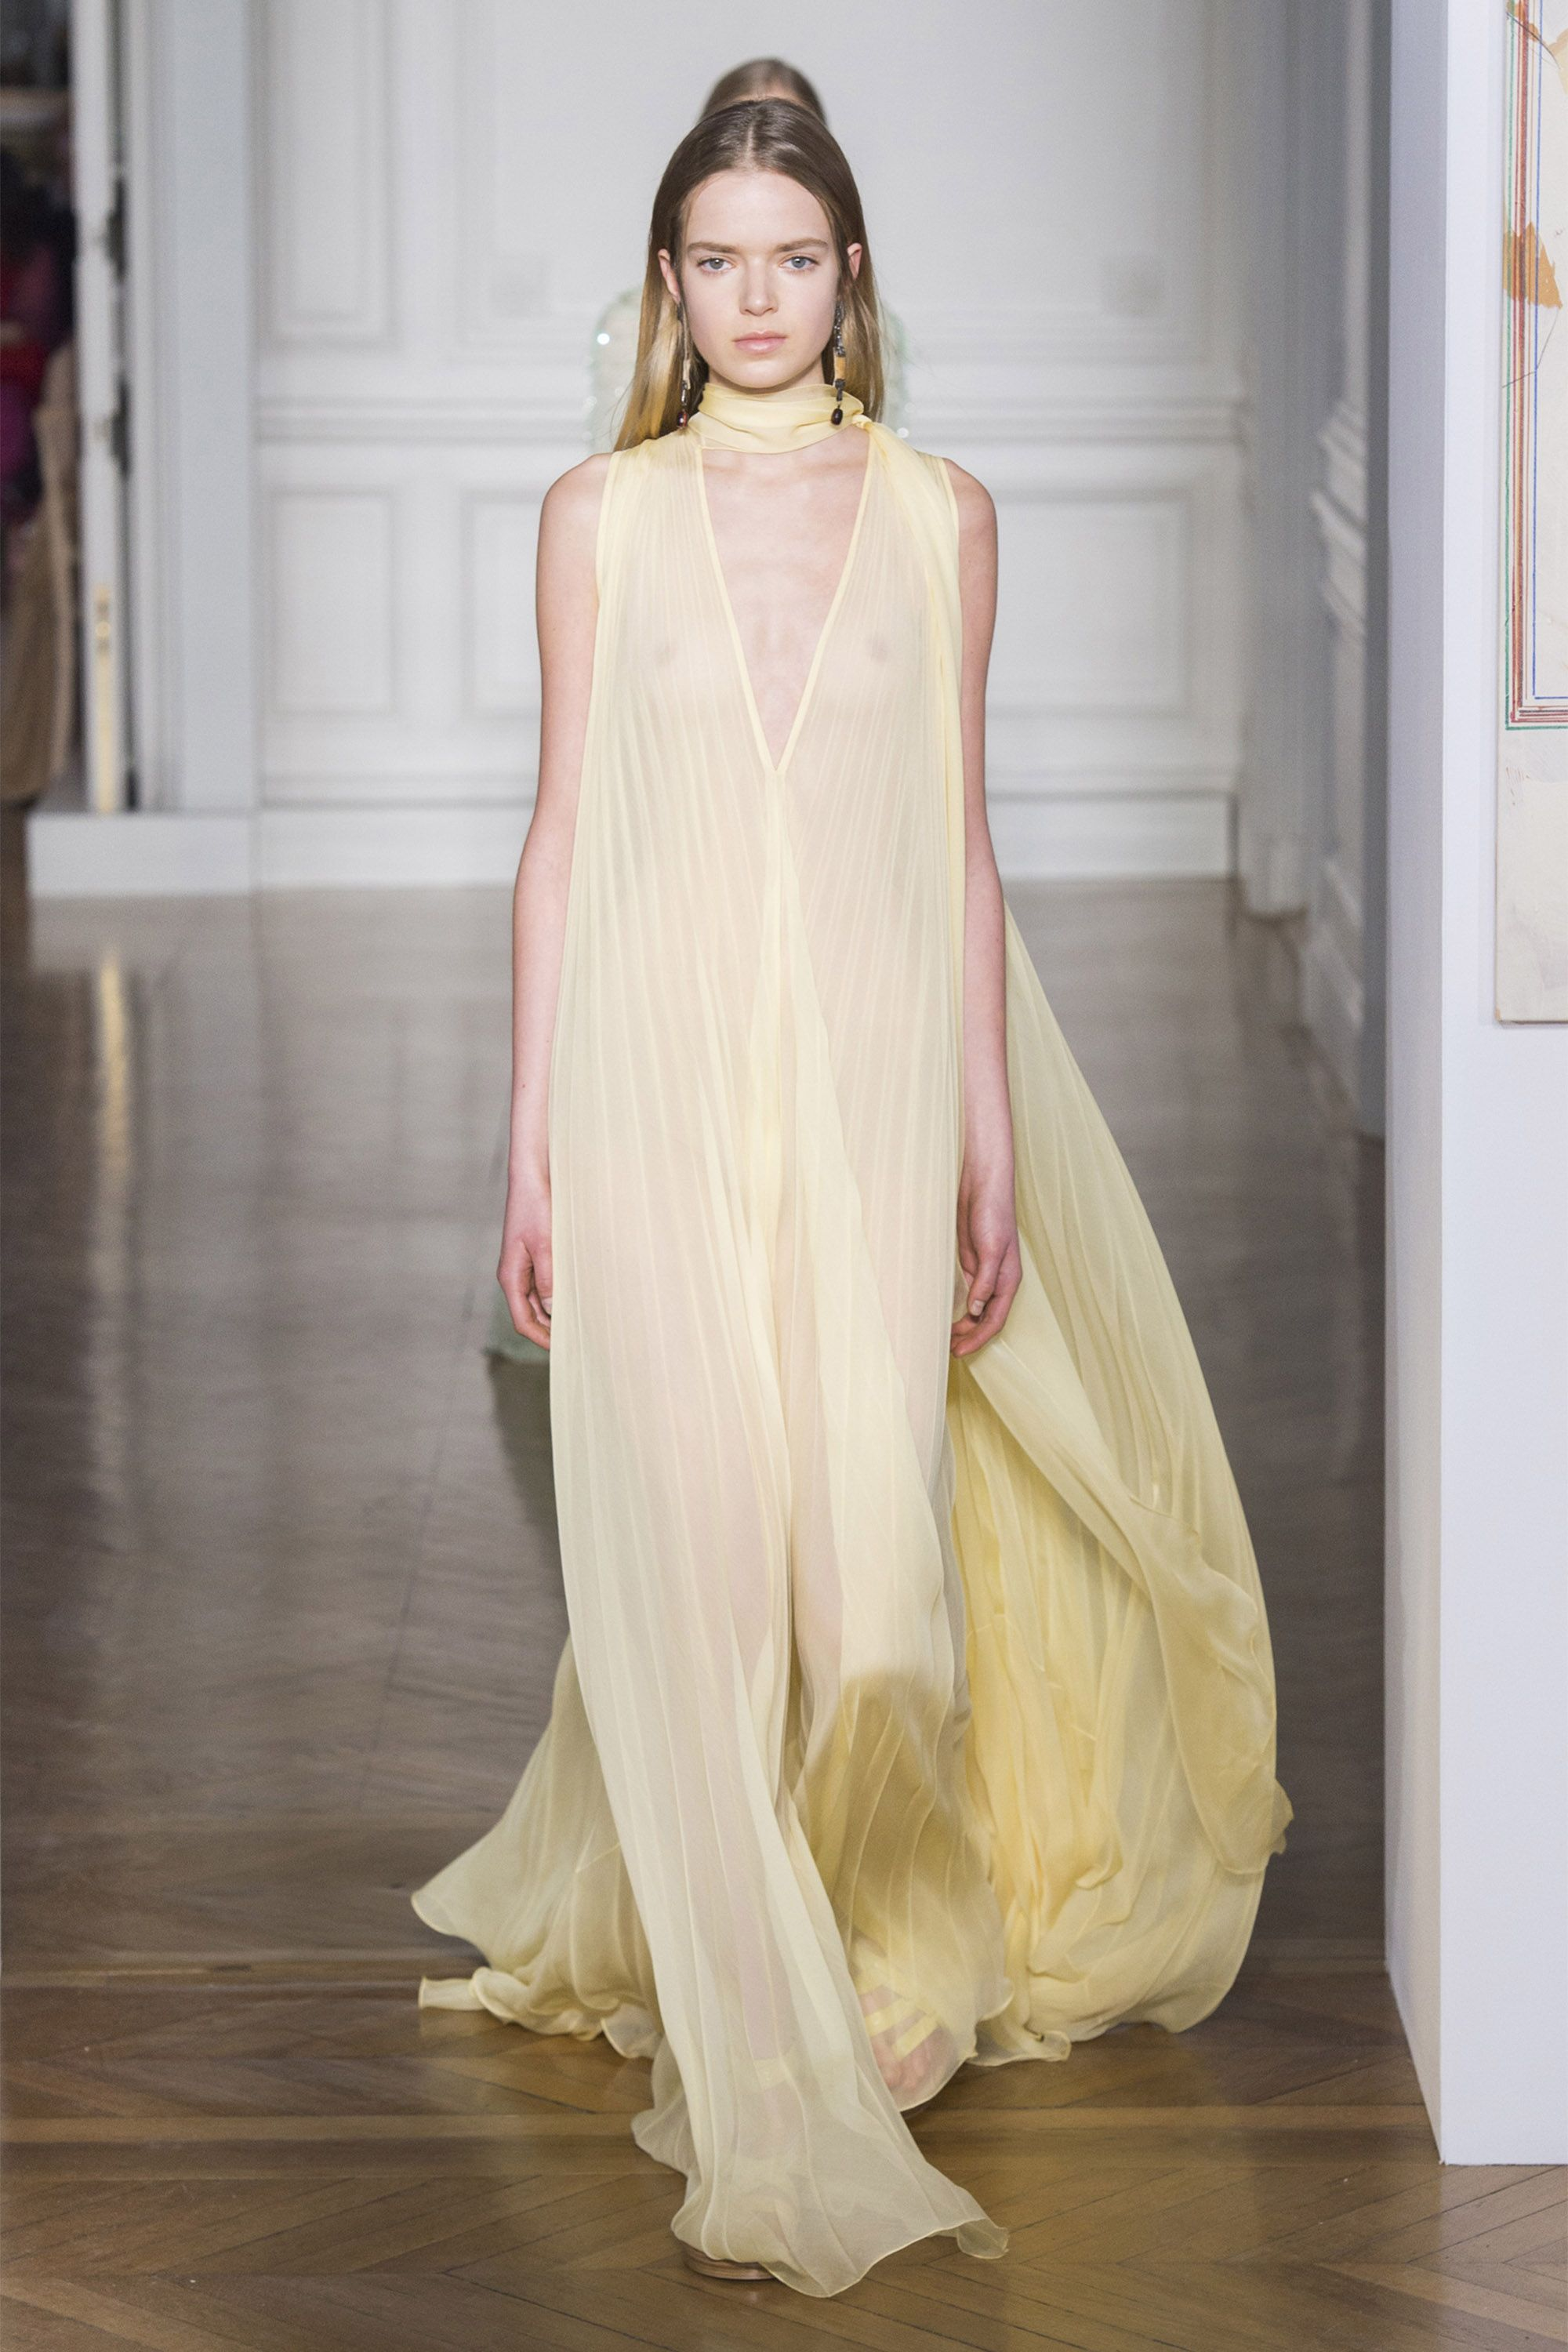 e4f9e2a371 Best Runway Looks From Haute Couture Spring 2017 - Haute Couture Week  Spring 2017